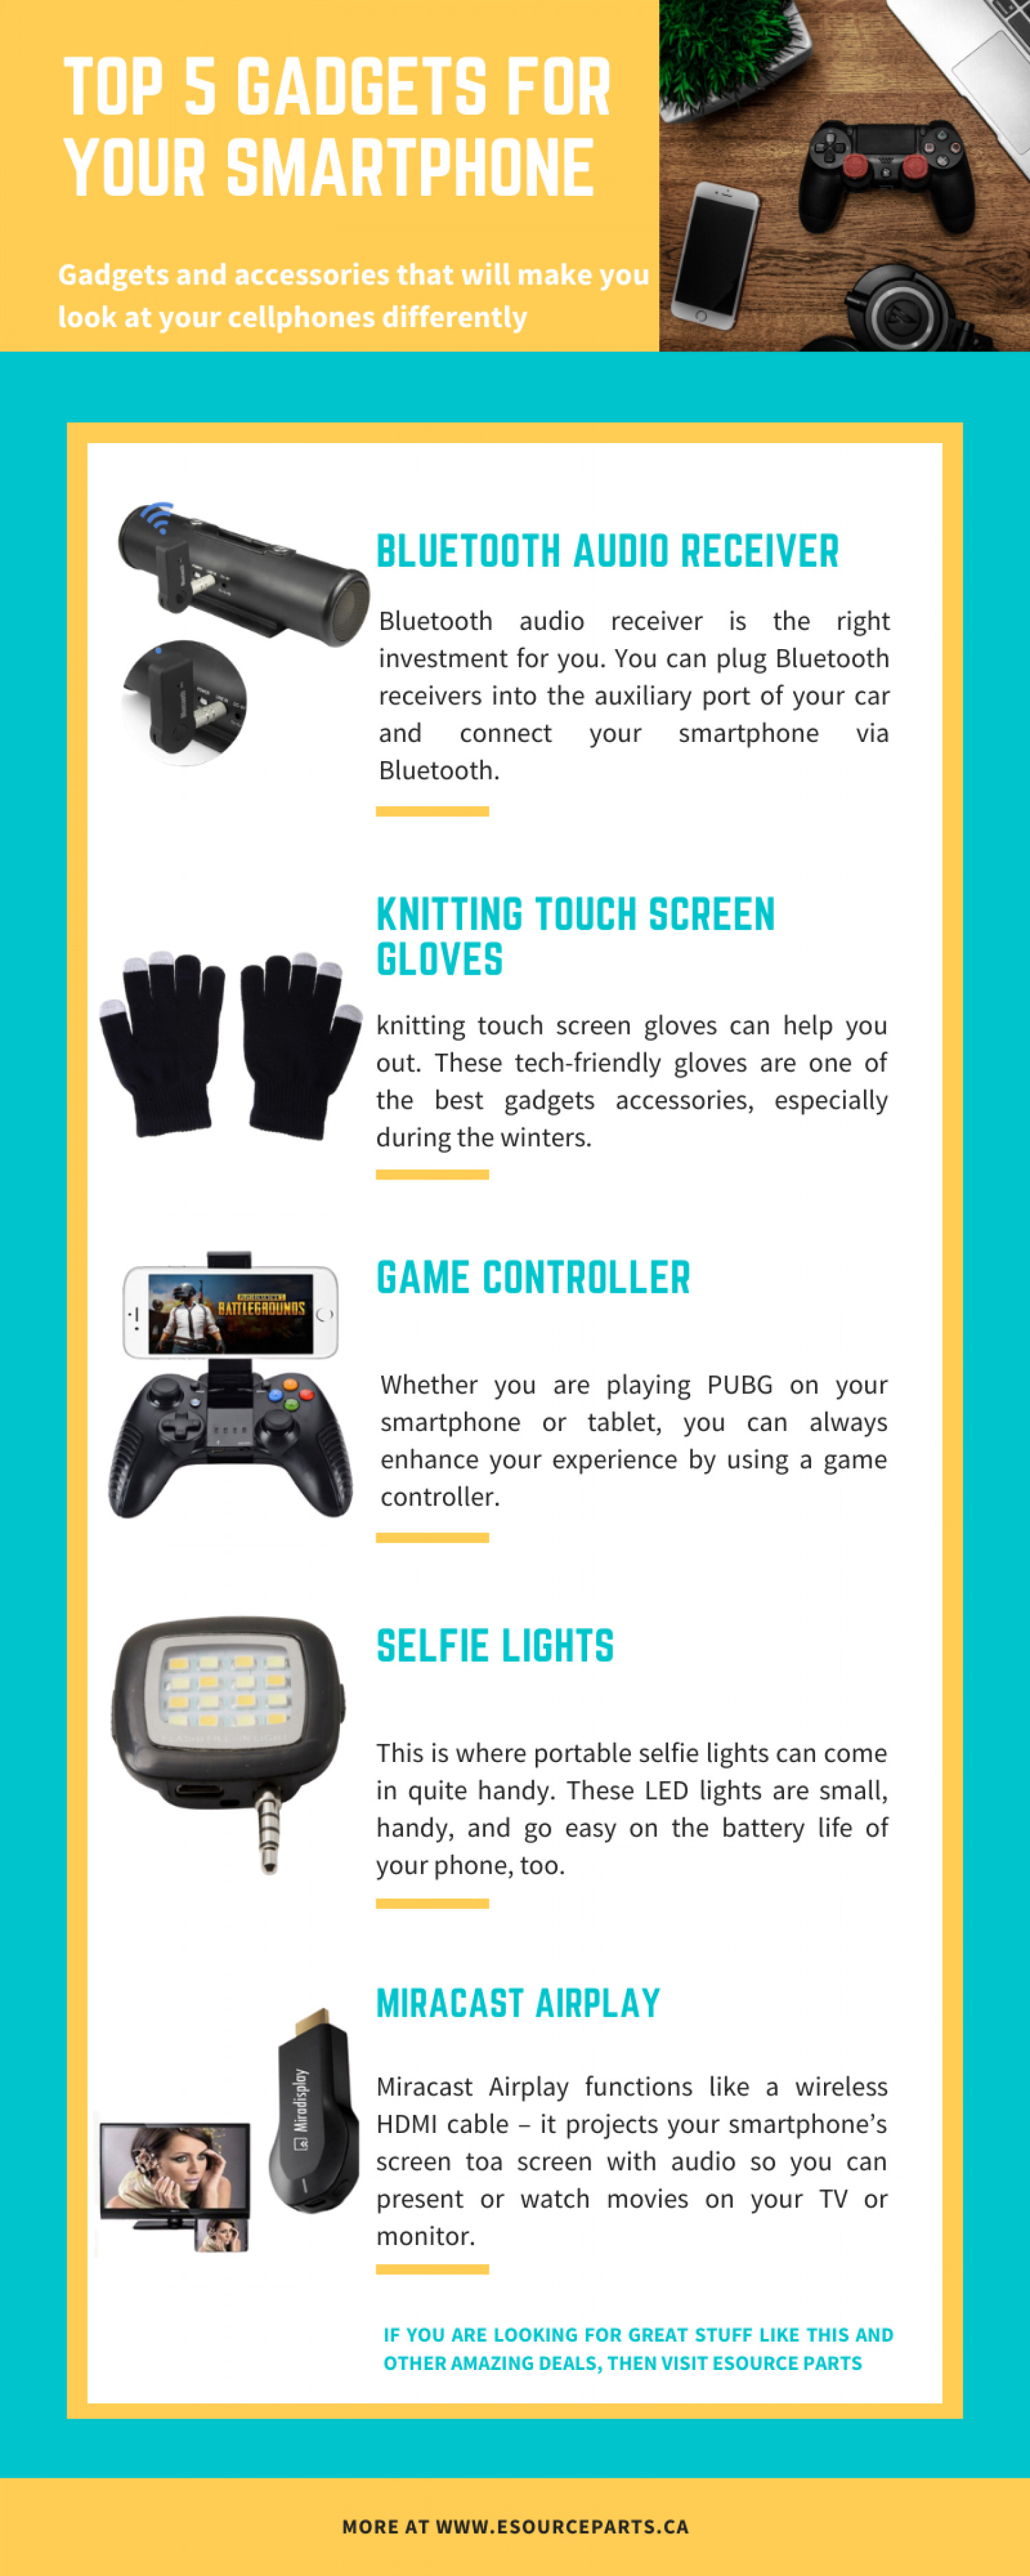 Top 5 Gadgets for Your Smartphone Infographic